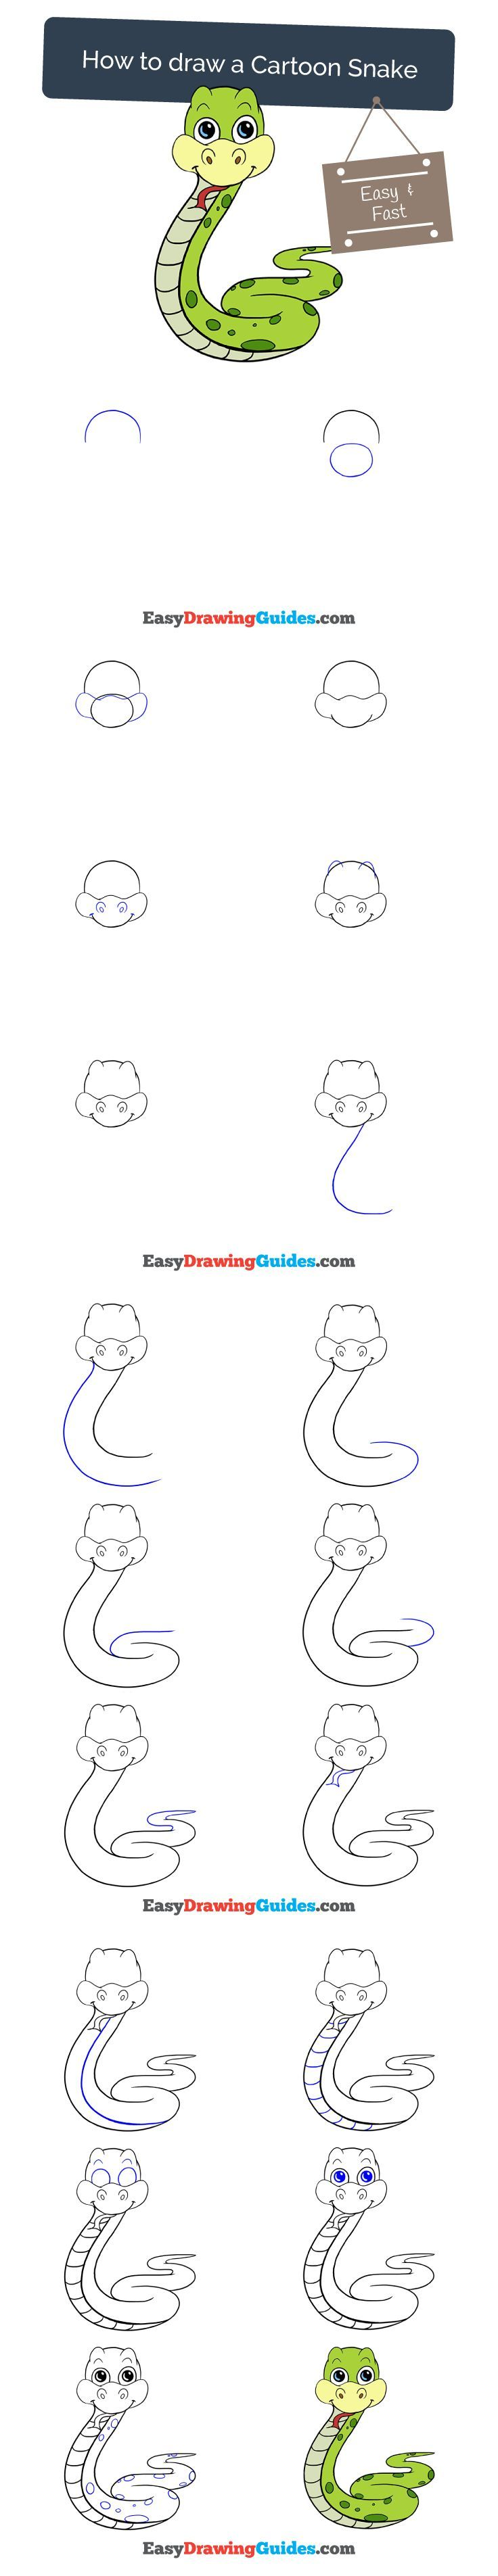 How To Draw A Cartoon Snake Easy Step By Step Drawing Guides Drawing Tutorials For Kids Drawing Tutorial Easy Drawings